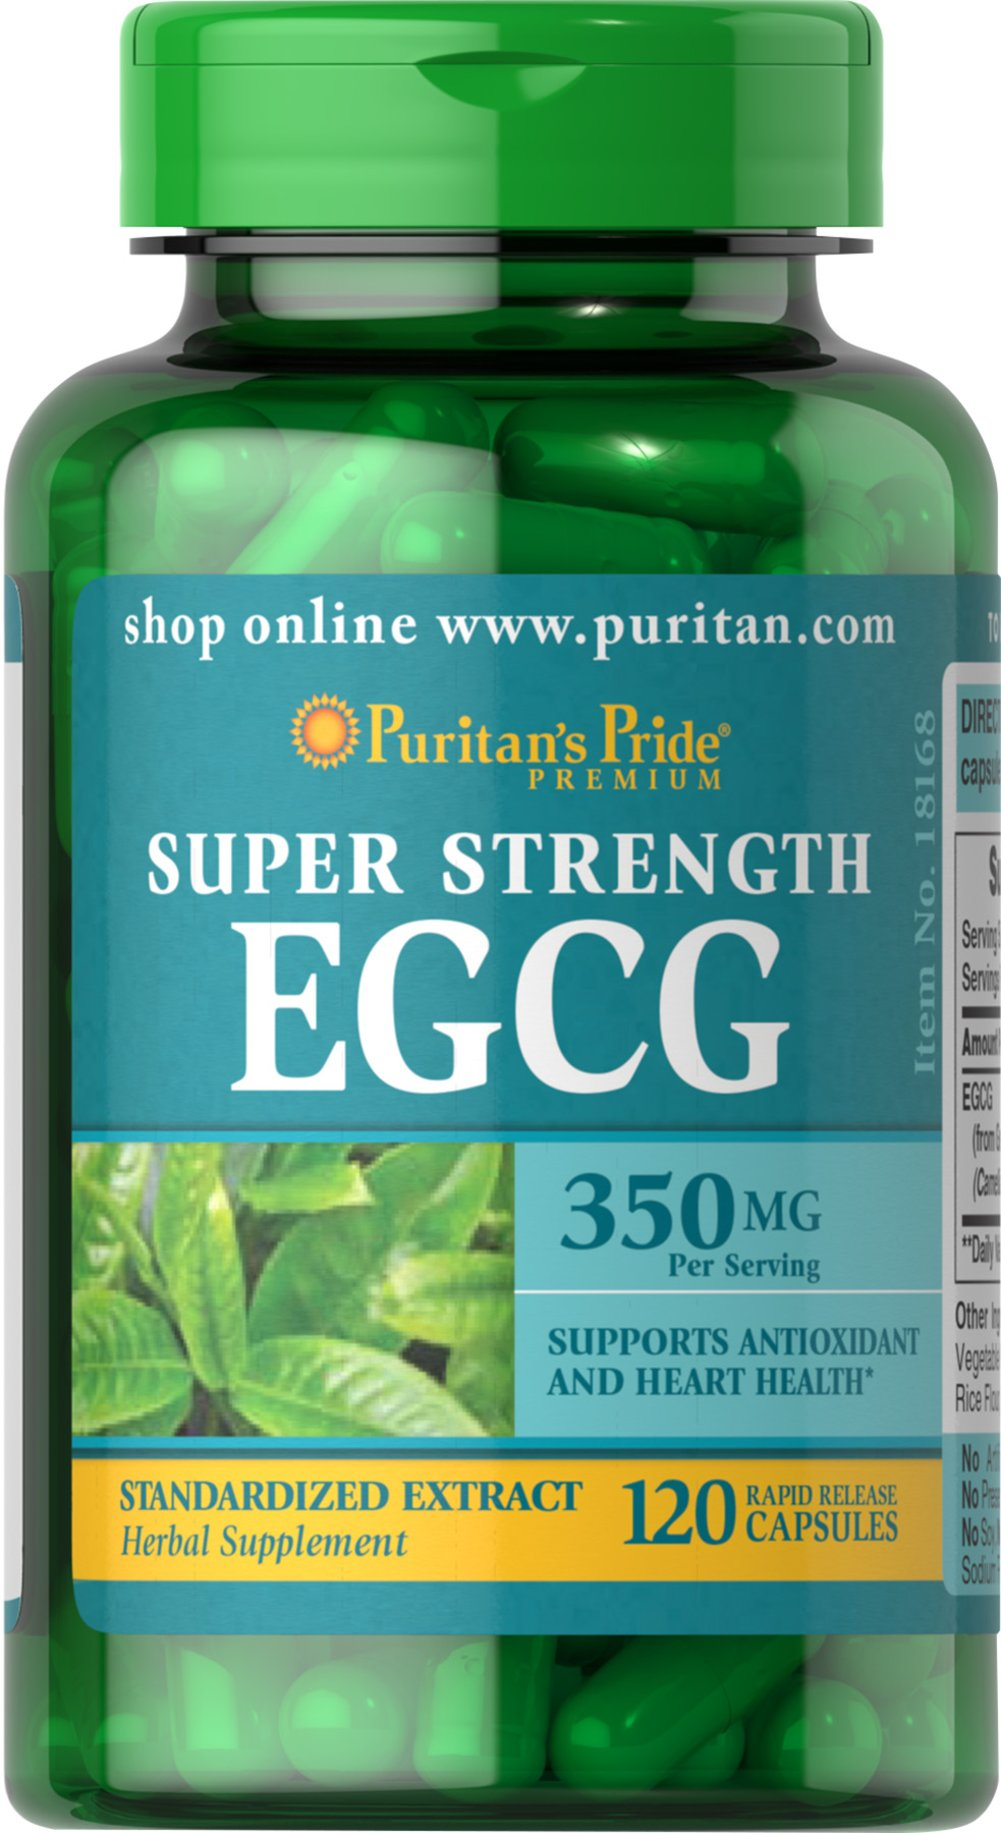 Super Strength EGCG 350 mg  120 Capsules 350 mg $28.99